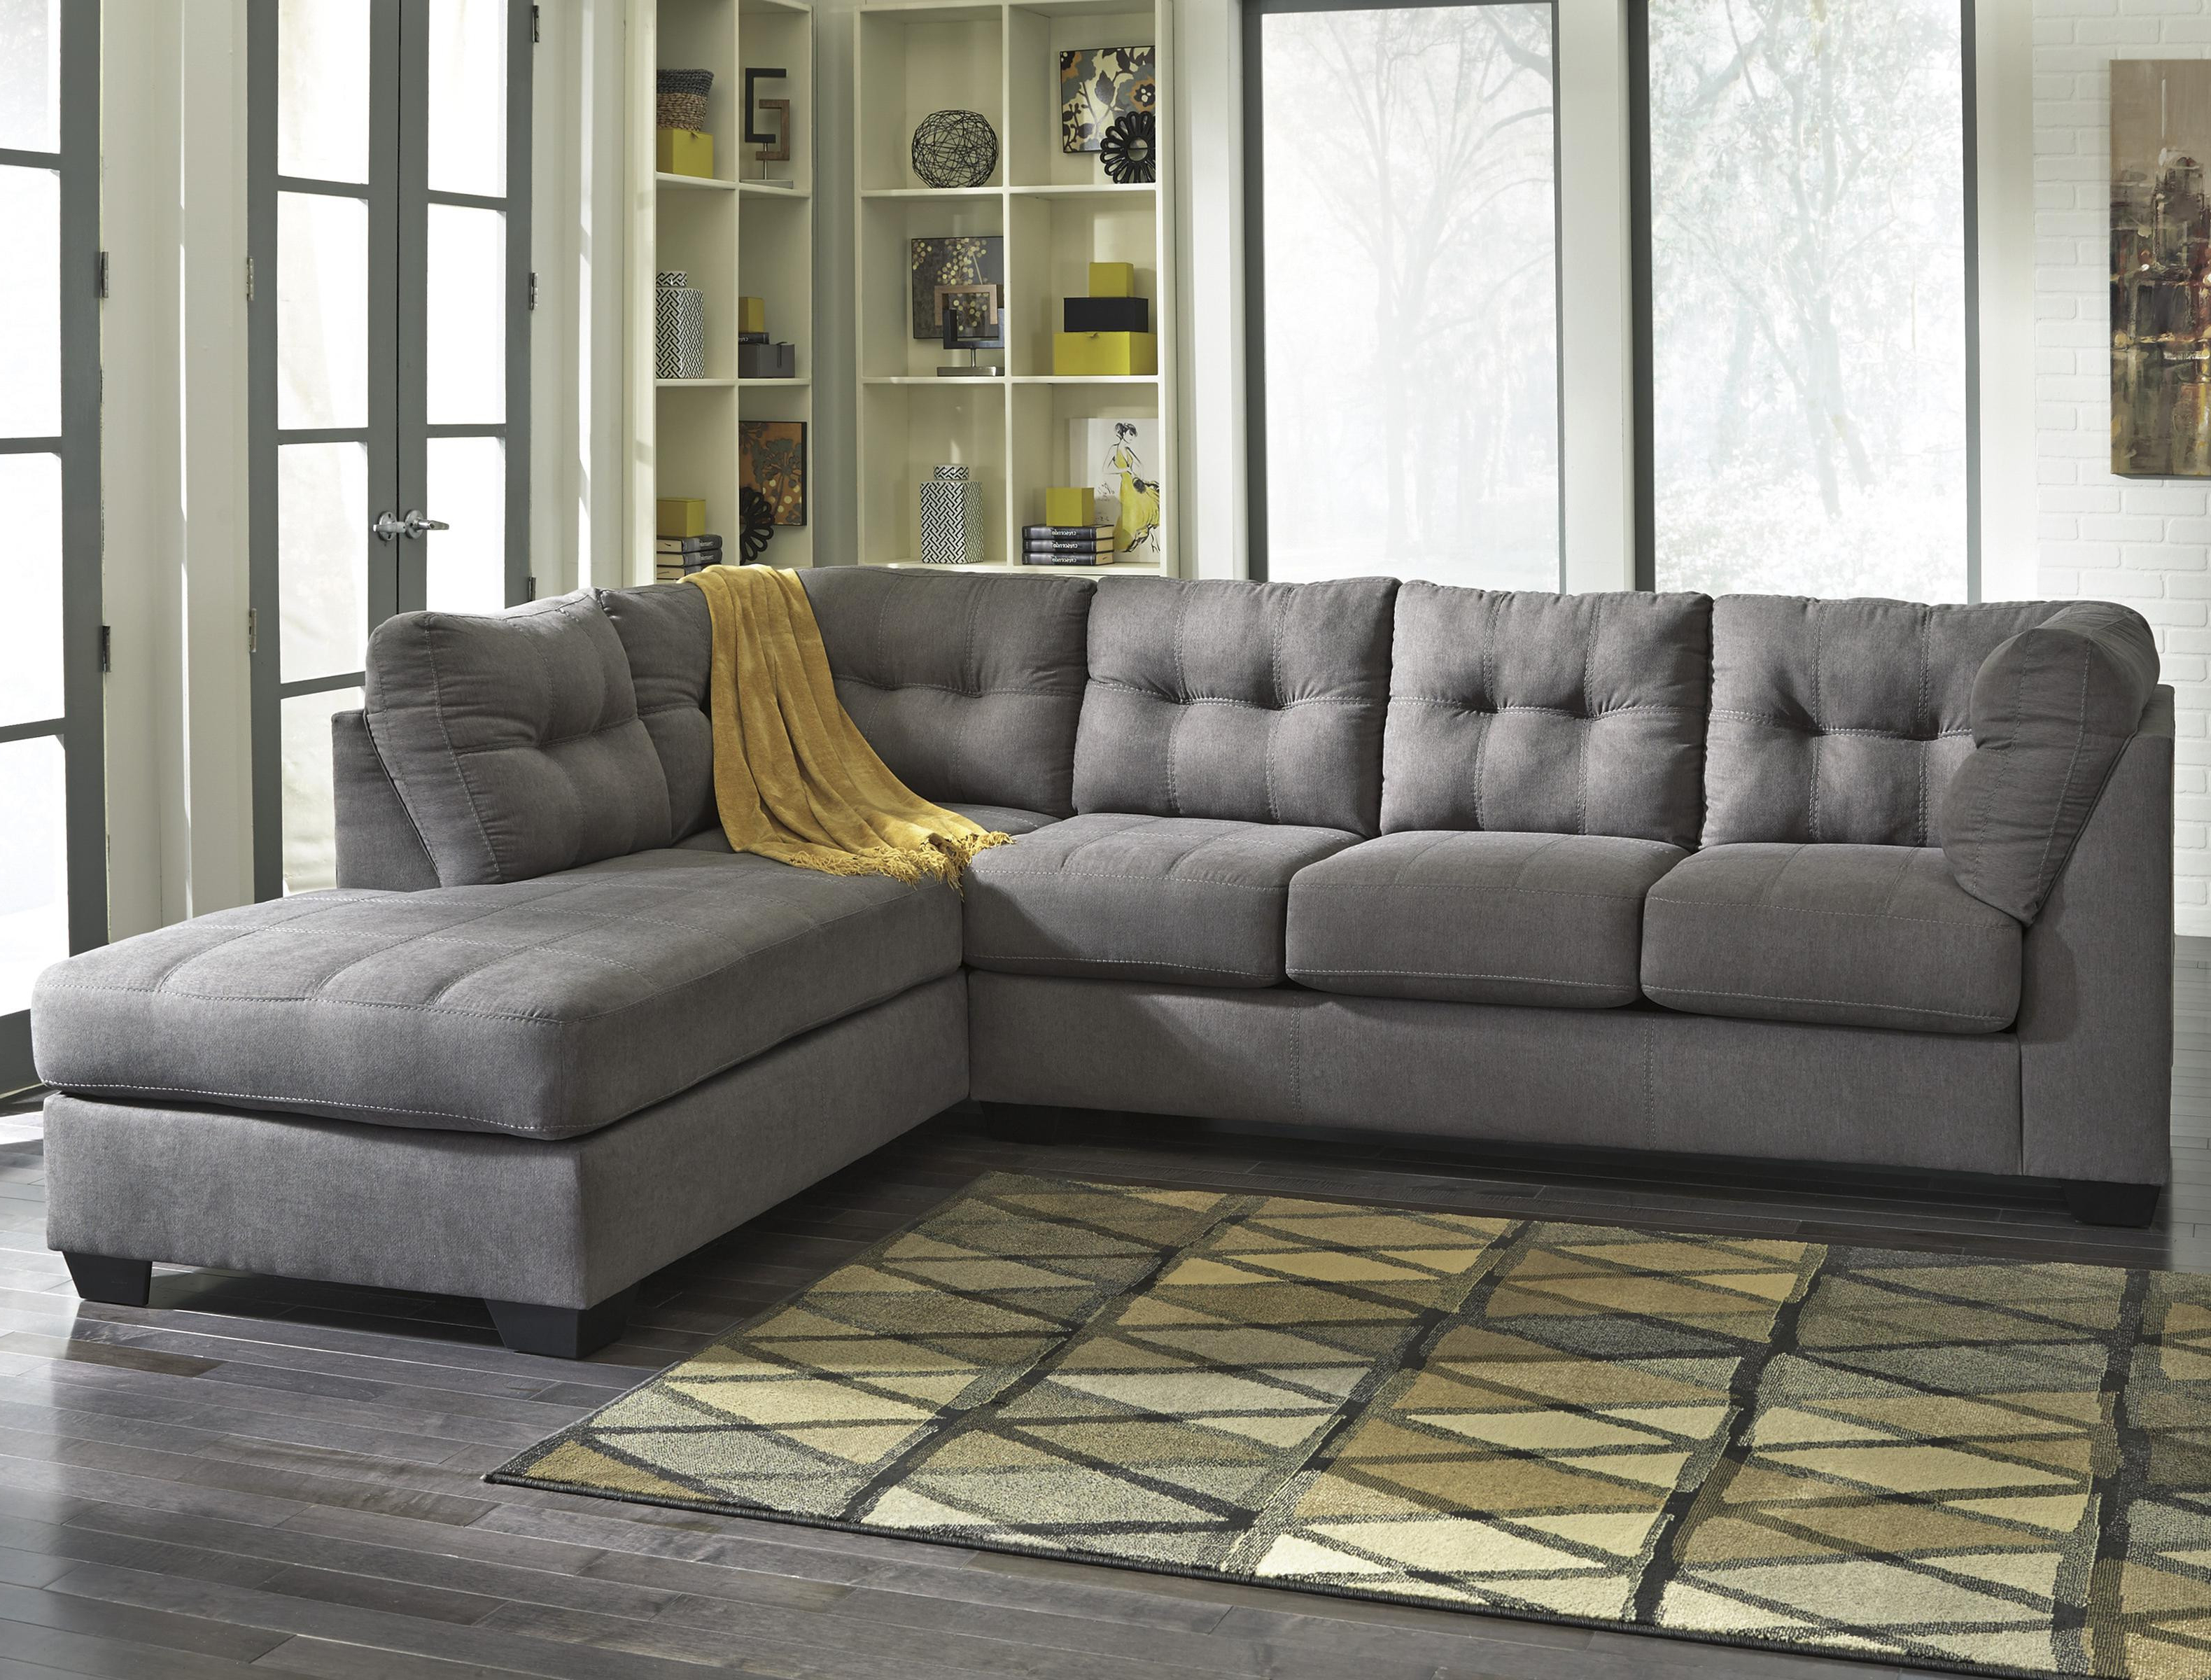 New 2 Piece Sectional With Chaise Lounge – Buildsimplehome Within Fashionable Delano 2 Piece Sectionals With Raf Oversized Chaise (Gallery 19 of 20)